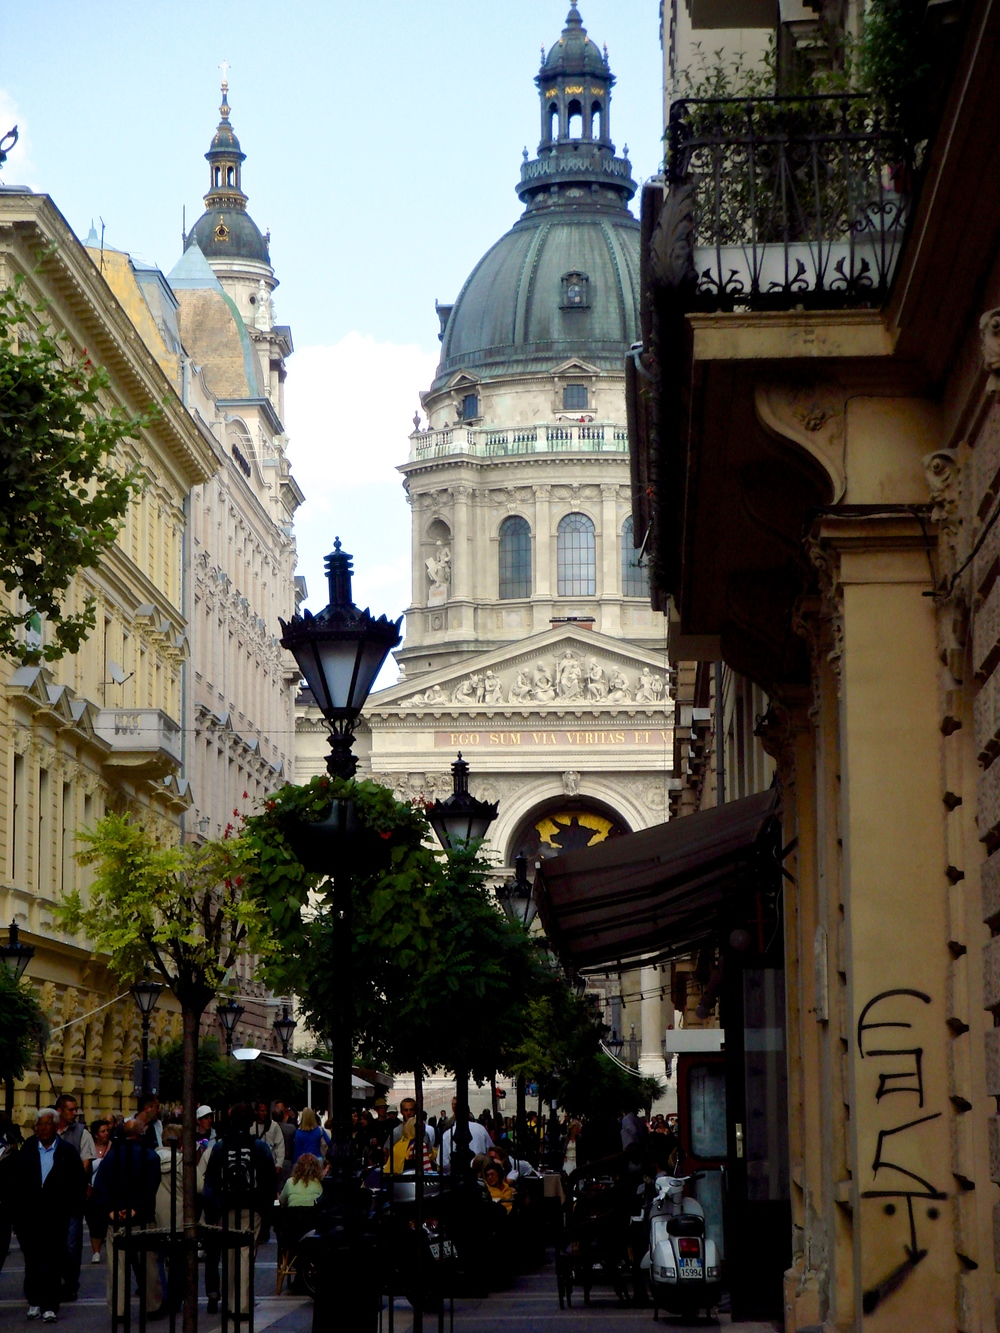 St. Stephen's Basilica in Budapest, Hungry